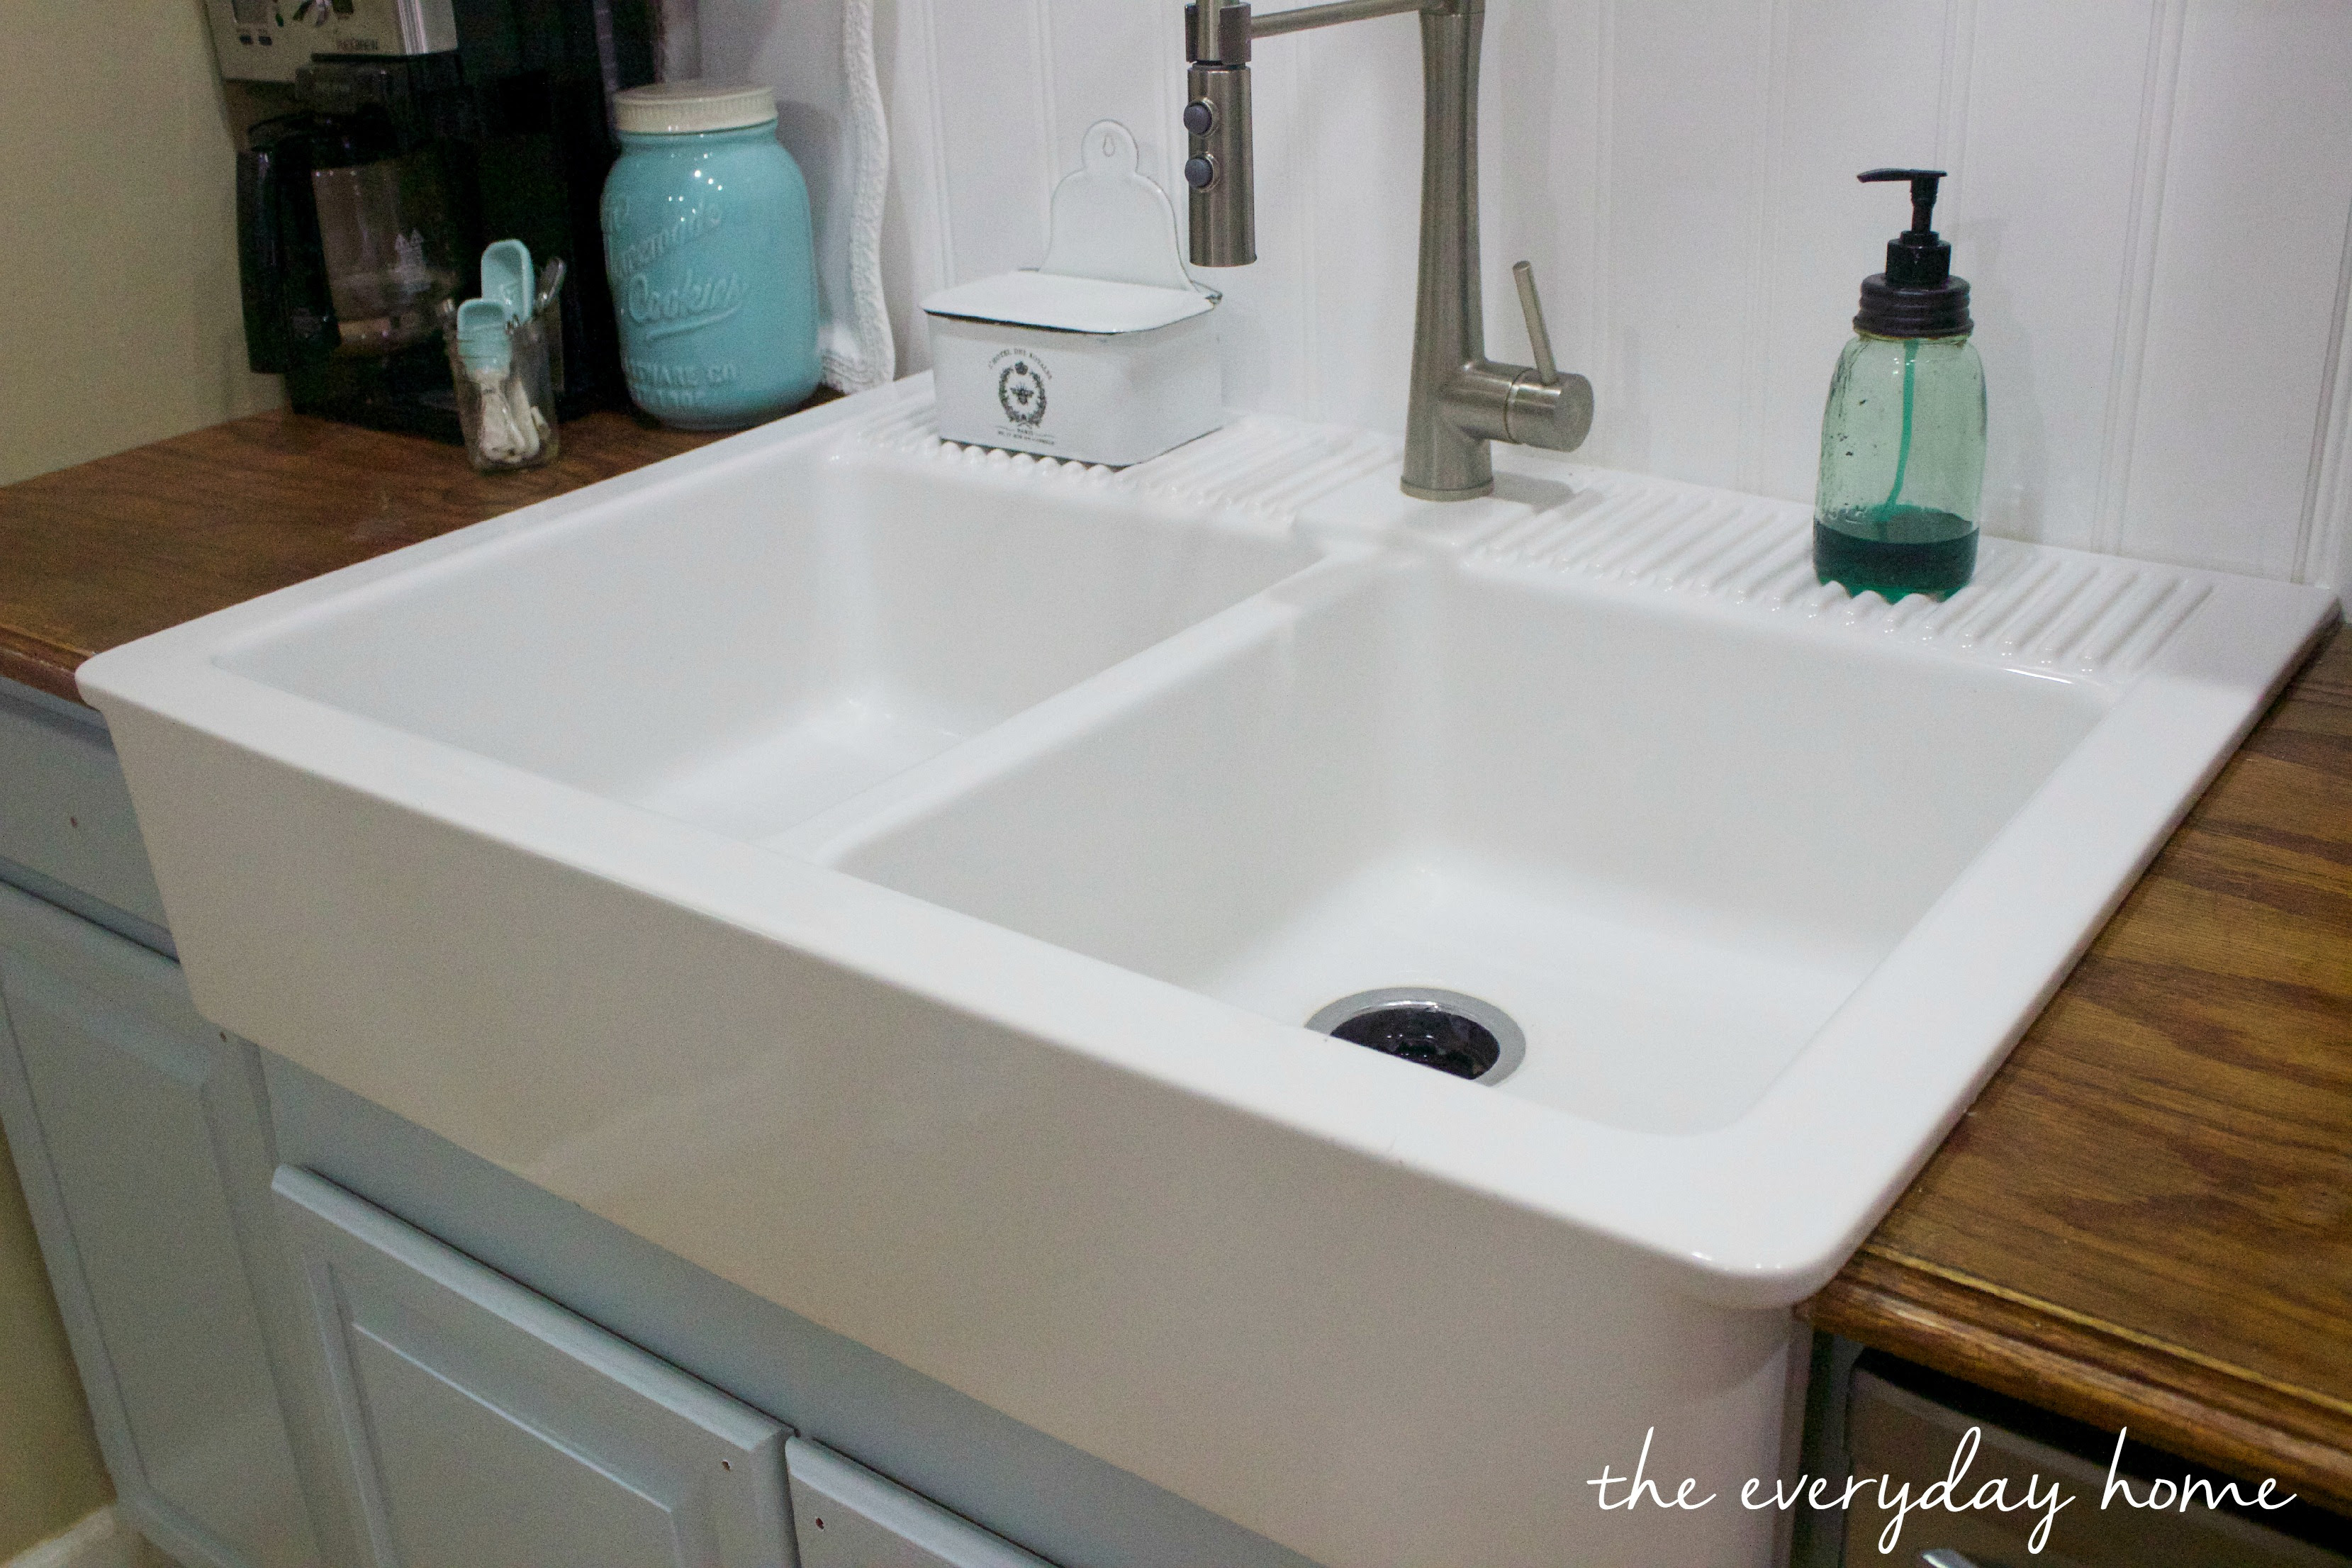 IKEA-Farmhouse-Sink  The Everyday Home  www.evevrydayhomeblog.com (2)